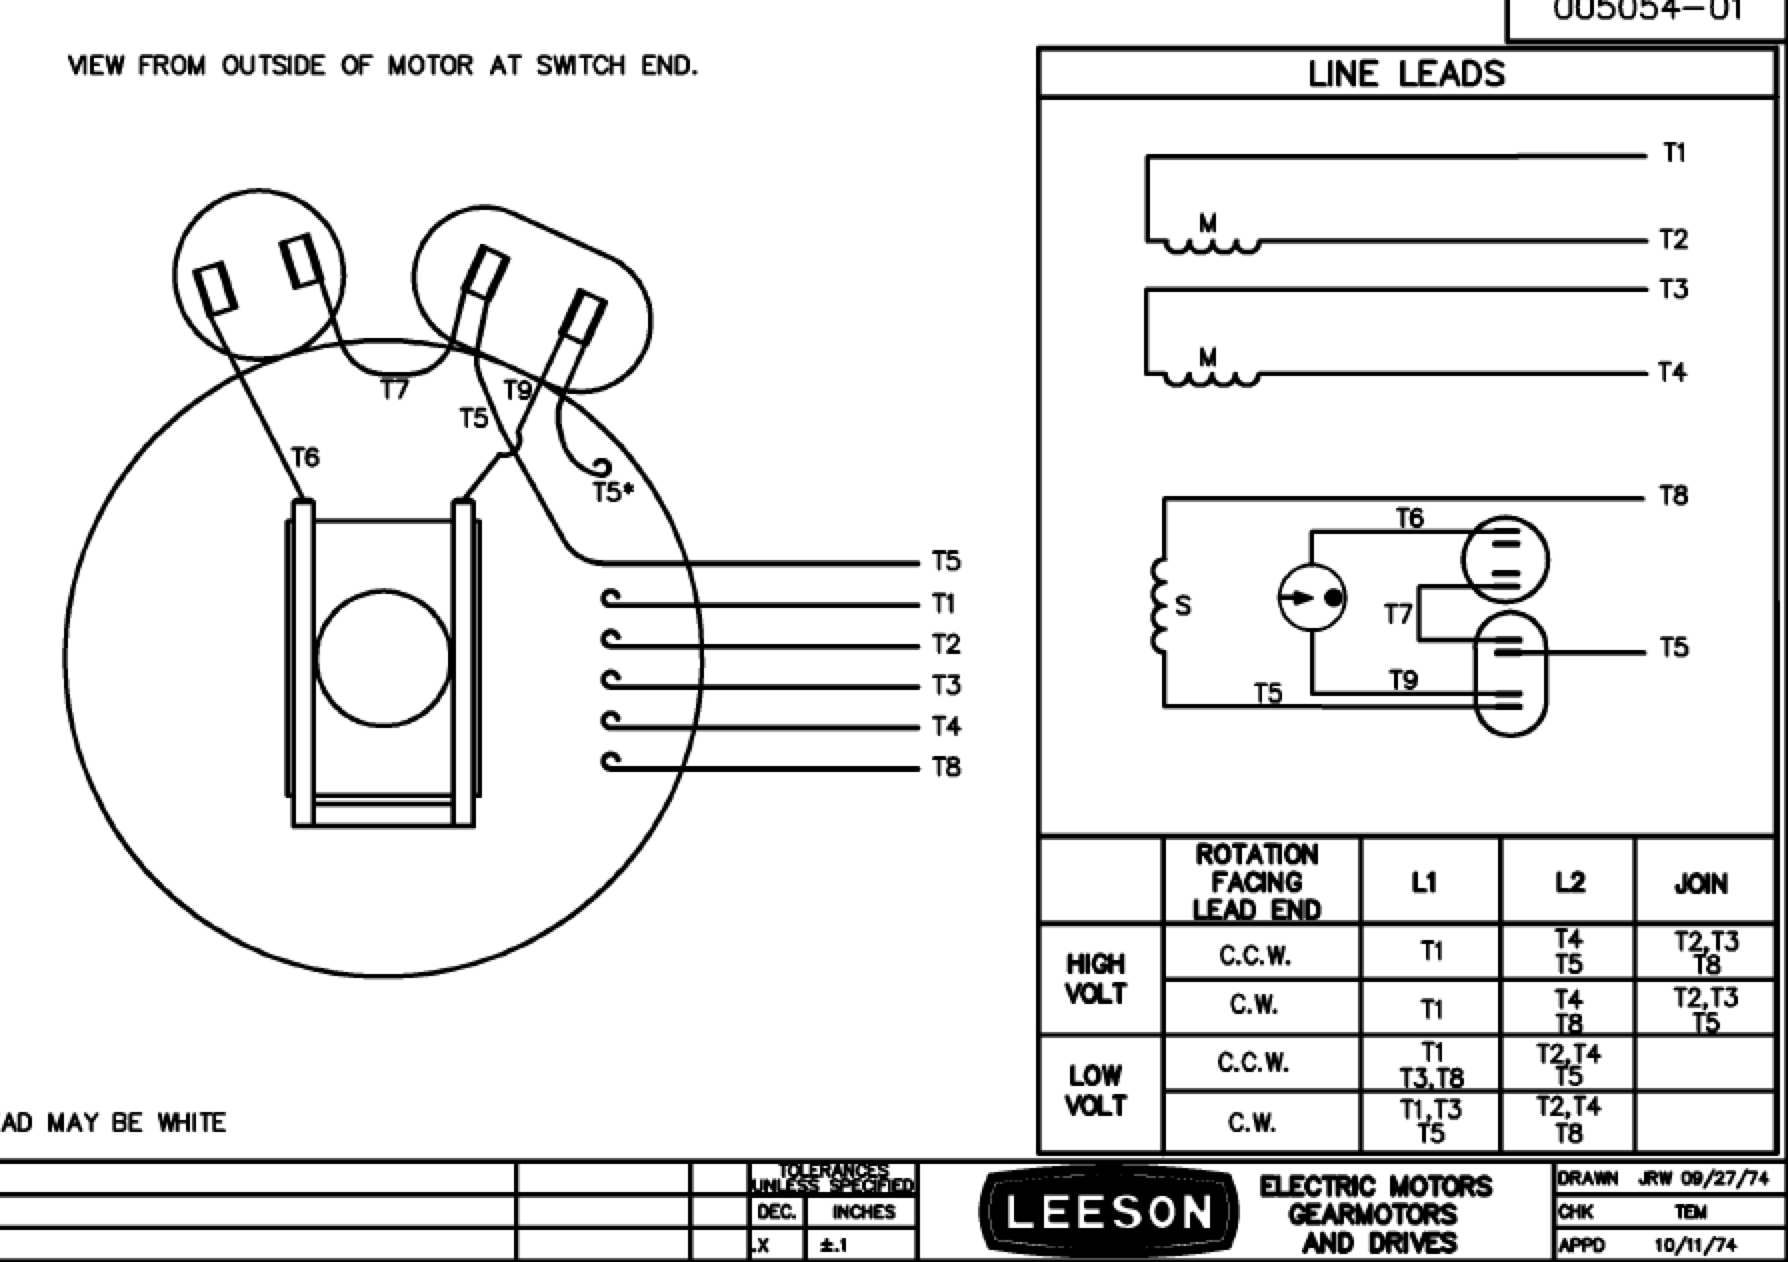 7sqc6 Leeson Electrical Ac Motor Model C6k17fk2h Info on dayton single phase motor wiring diagrams